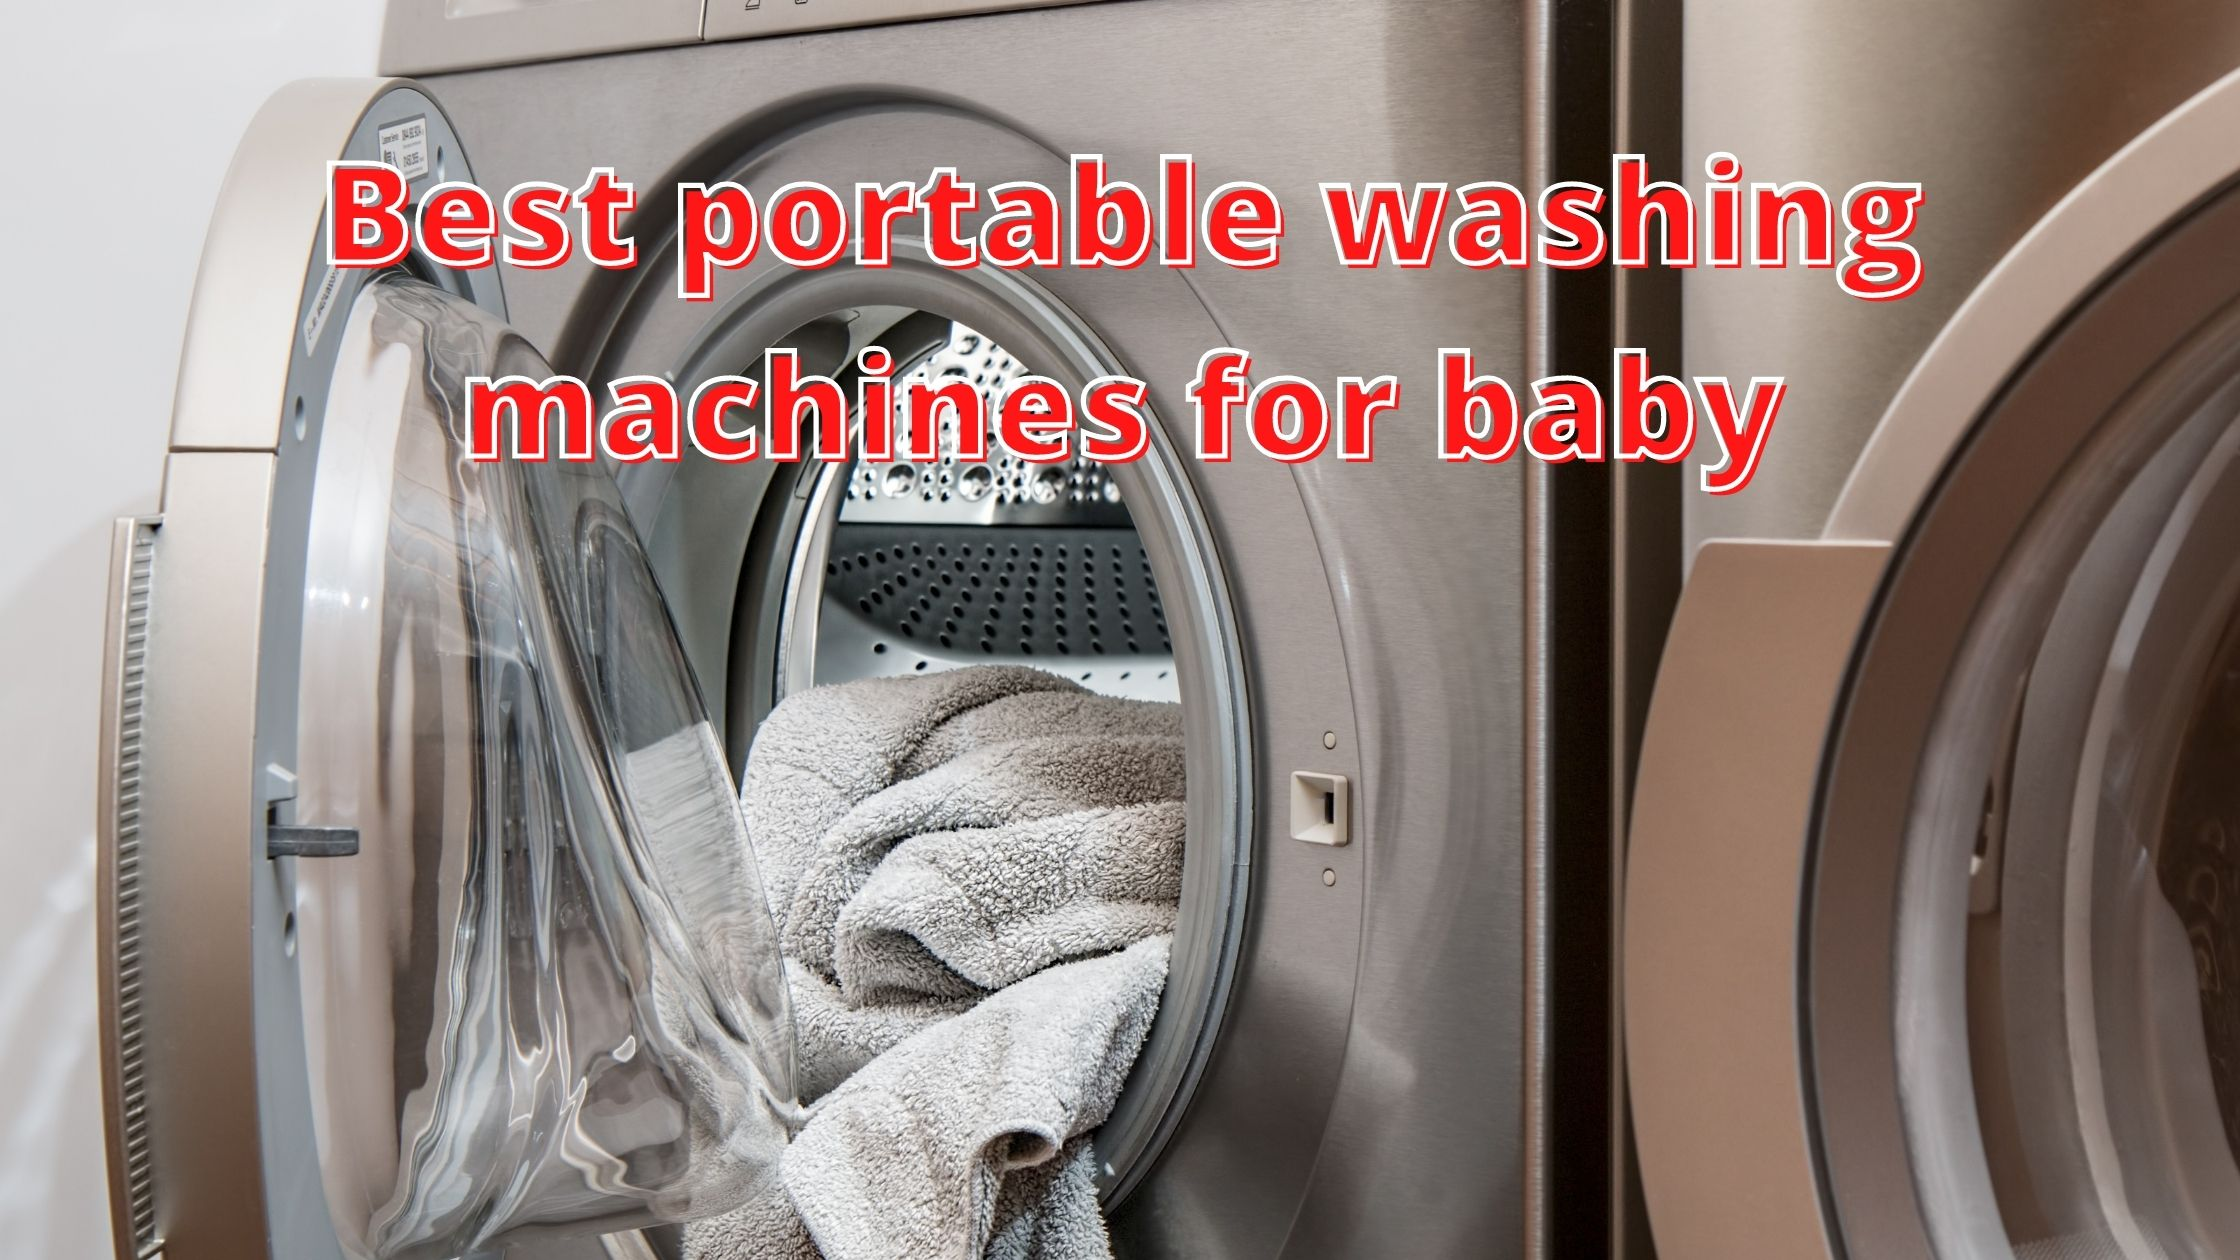 Best portable washing machines for baby